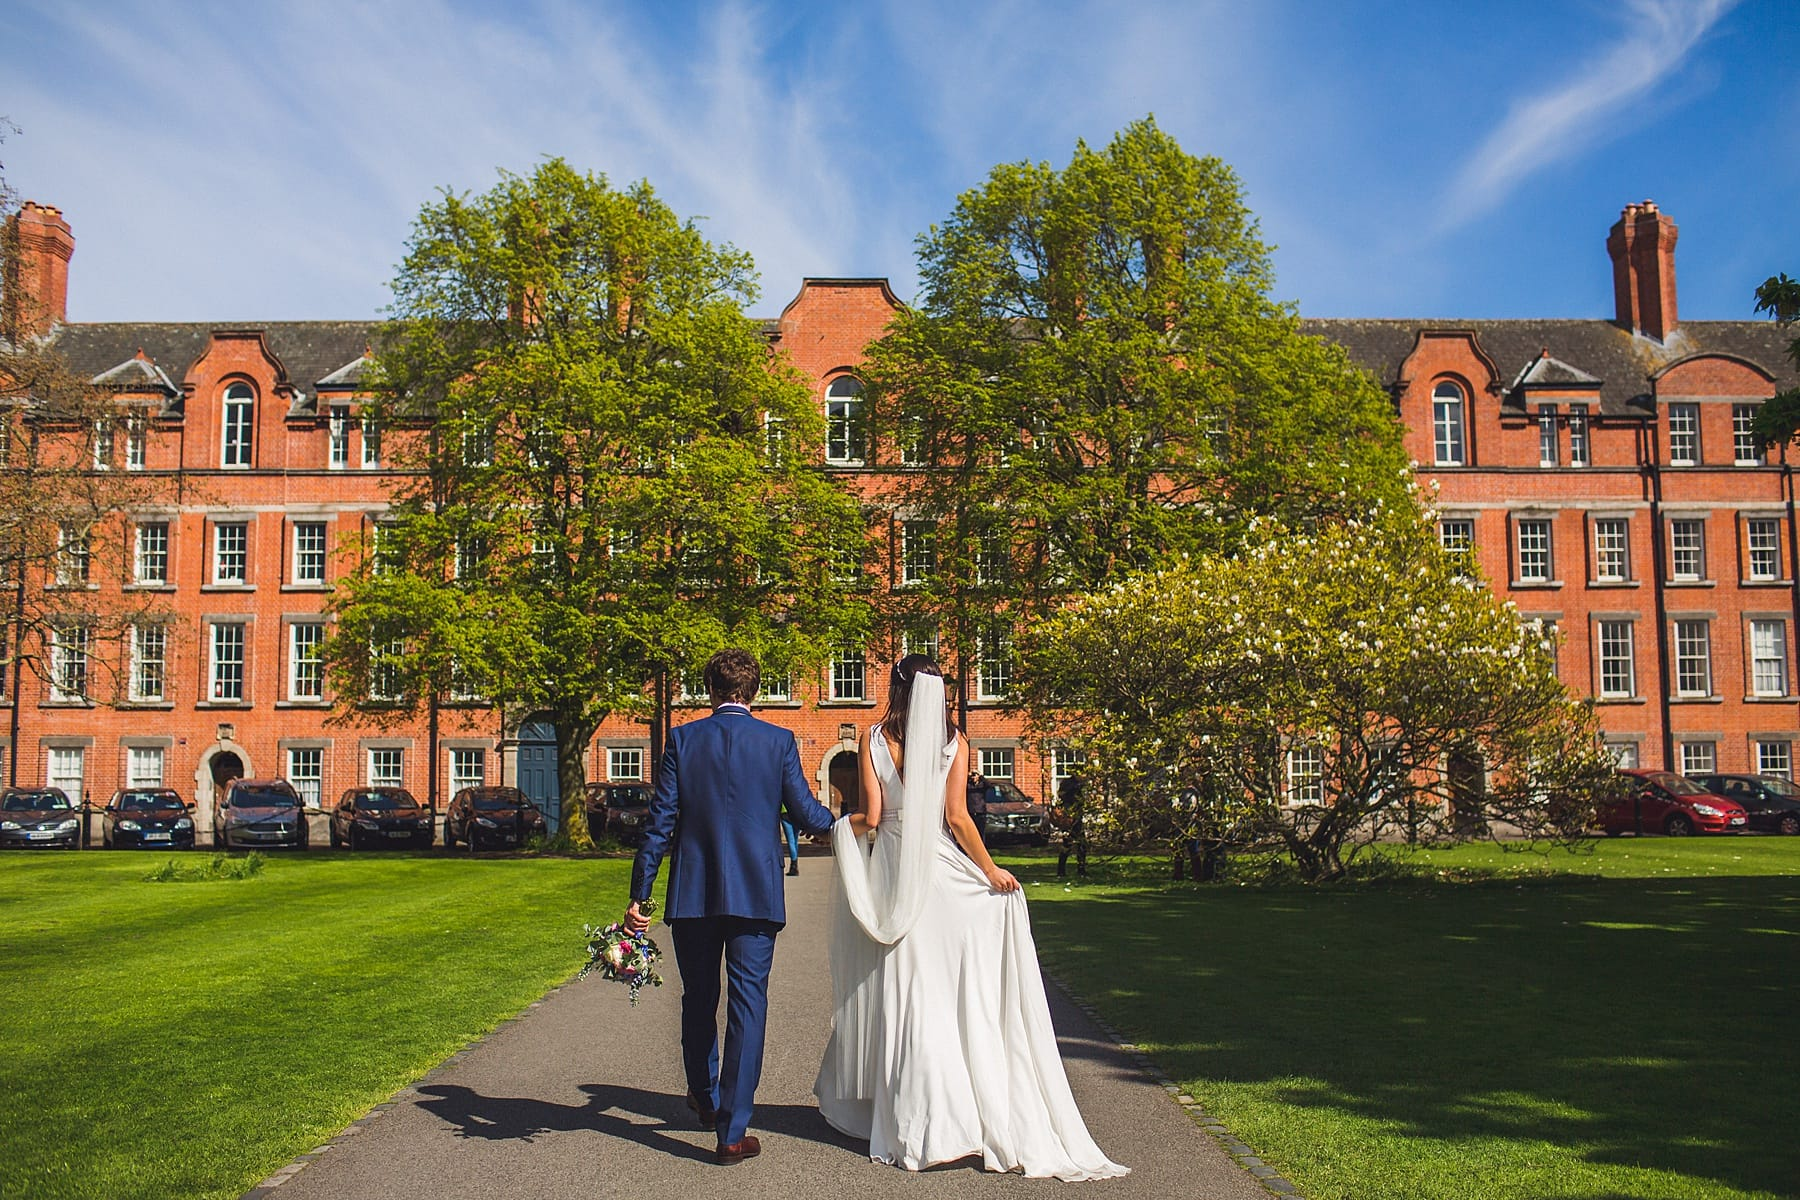 northern ireland wedding photographer,borris house,glenview hotel,ballyduggan mill,crieff hotel scotland,trinity college dublin wedding,dalduff farm wedding,port eliot,